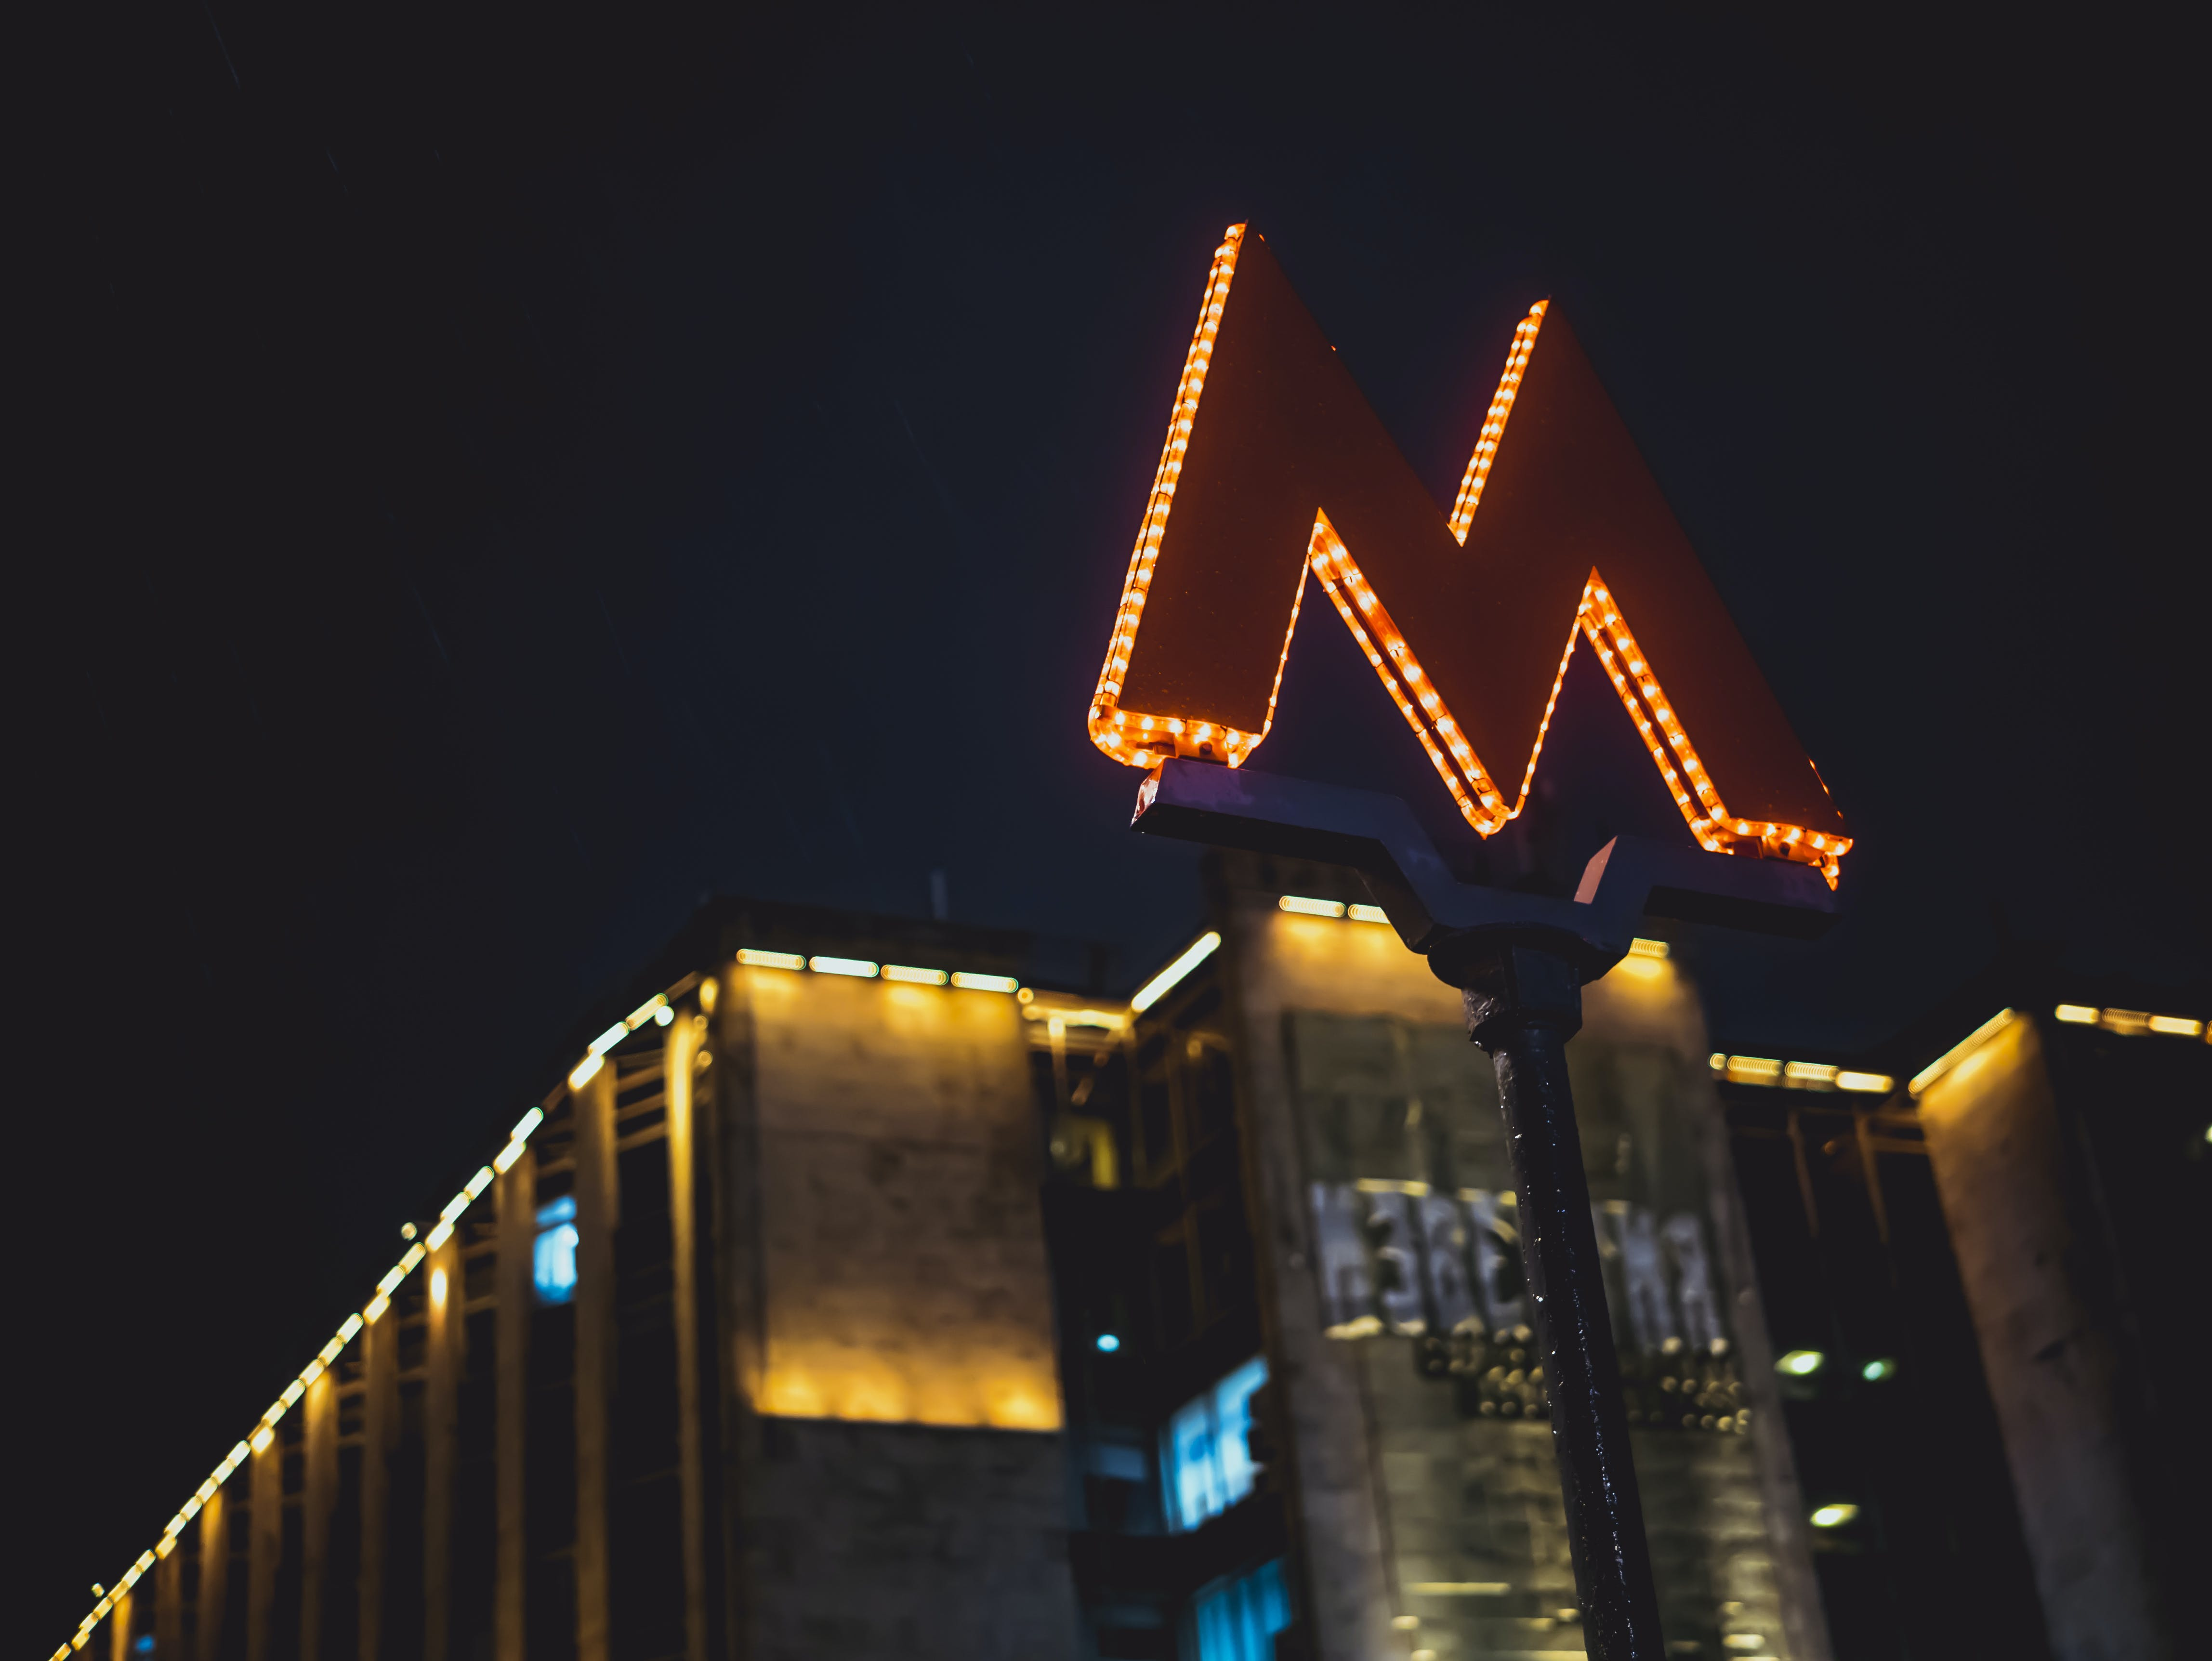 Low Angle Photography of Lighted M Road Sign during Nighttime